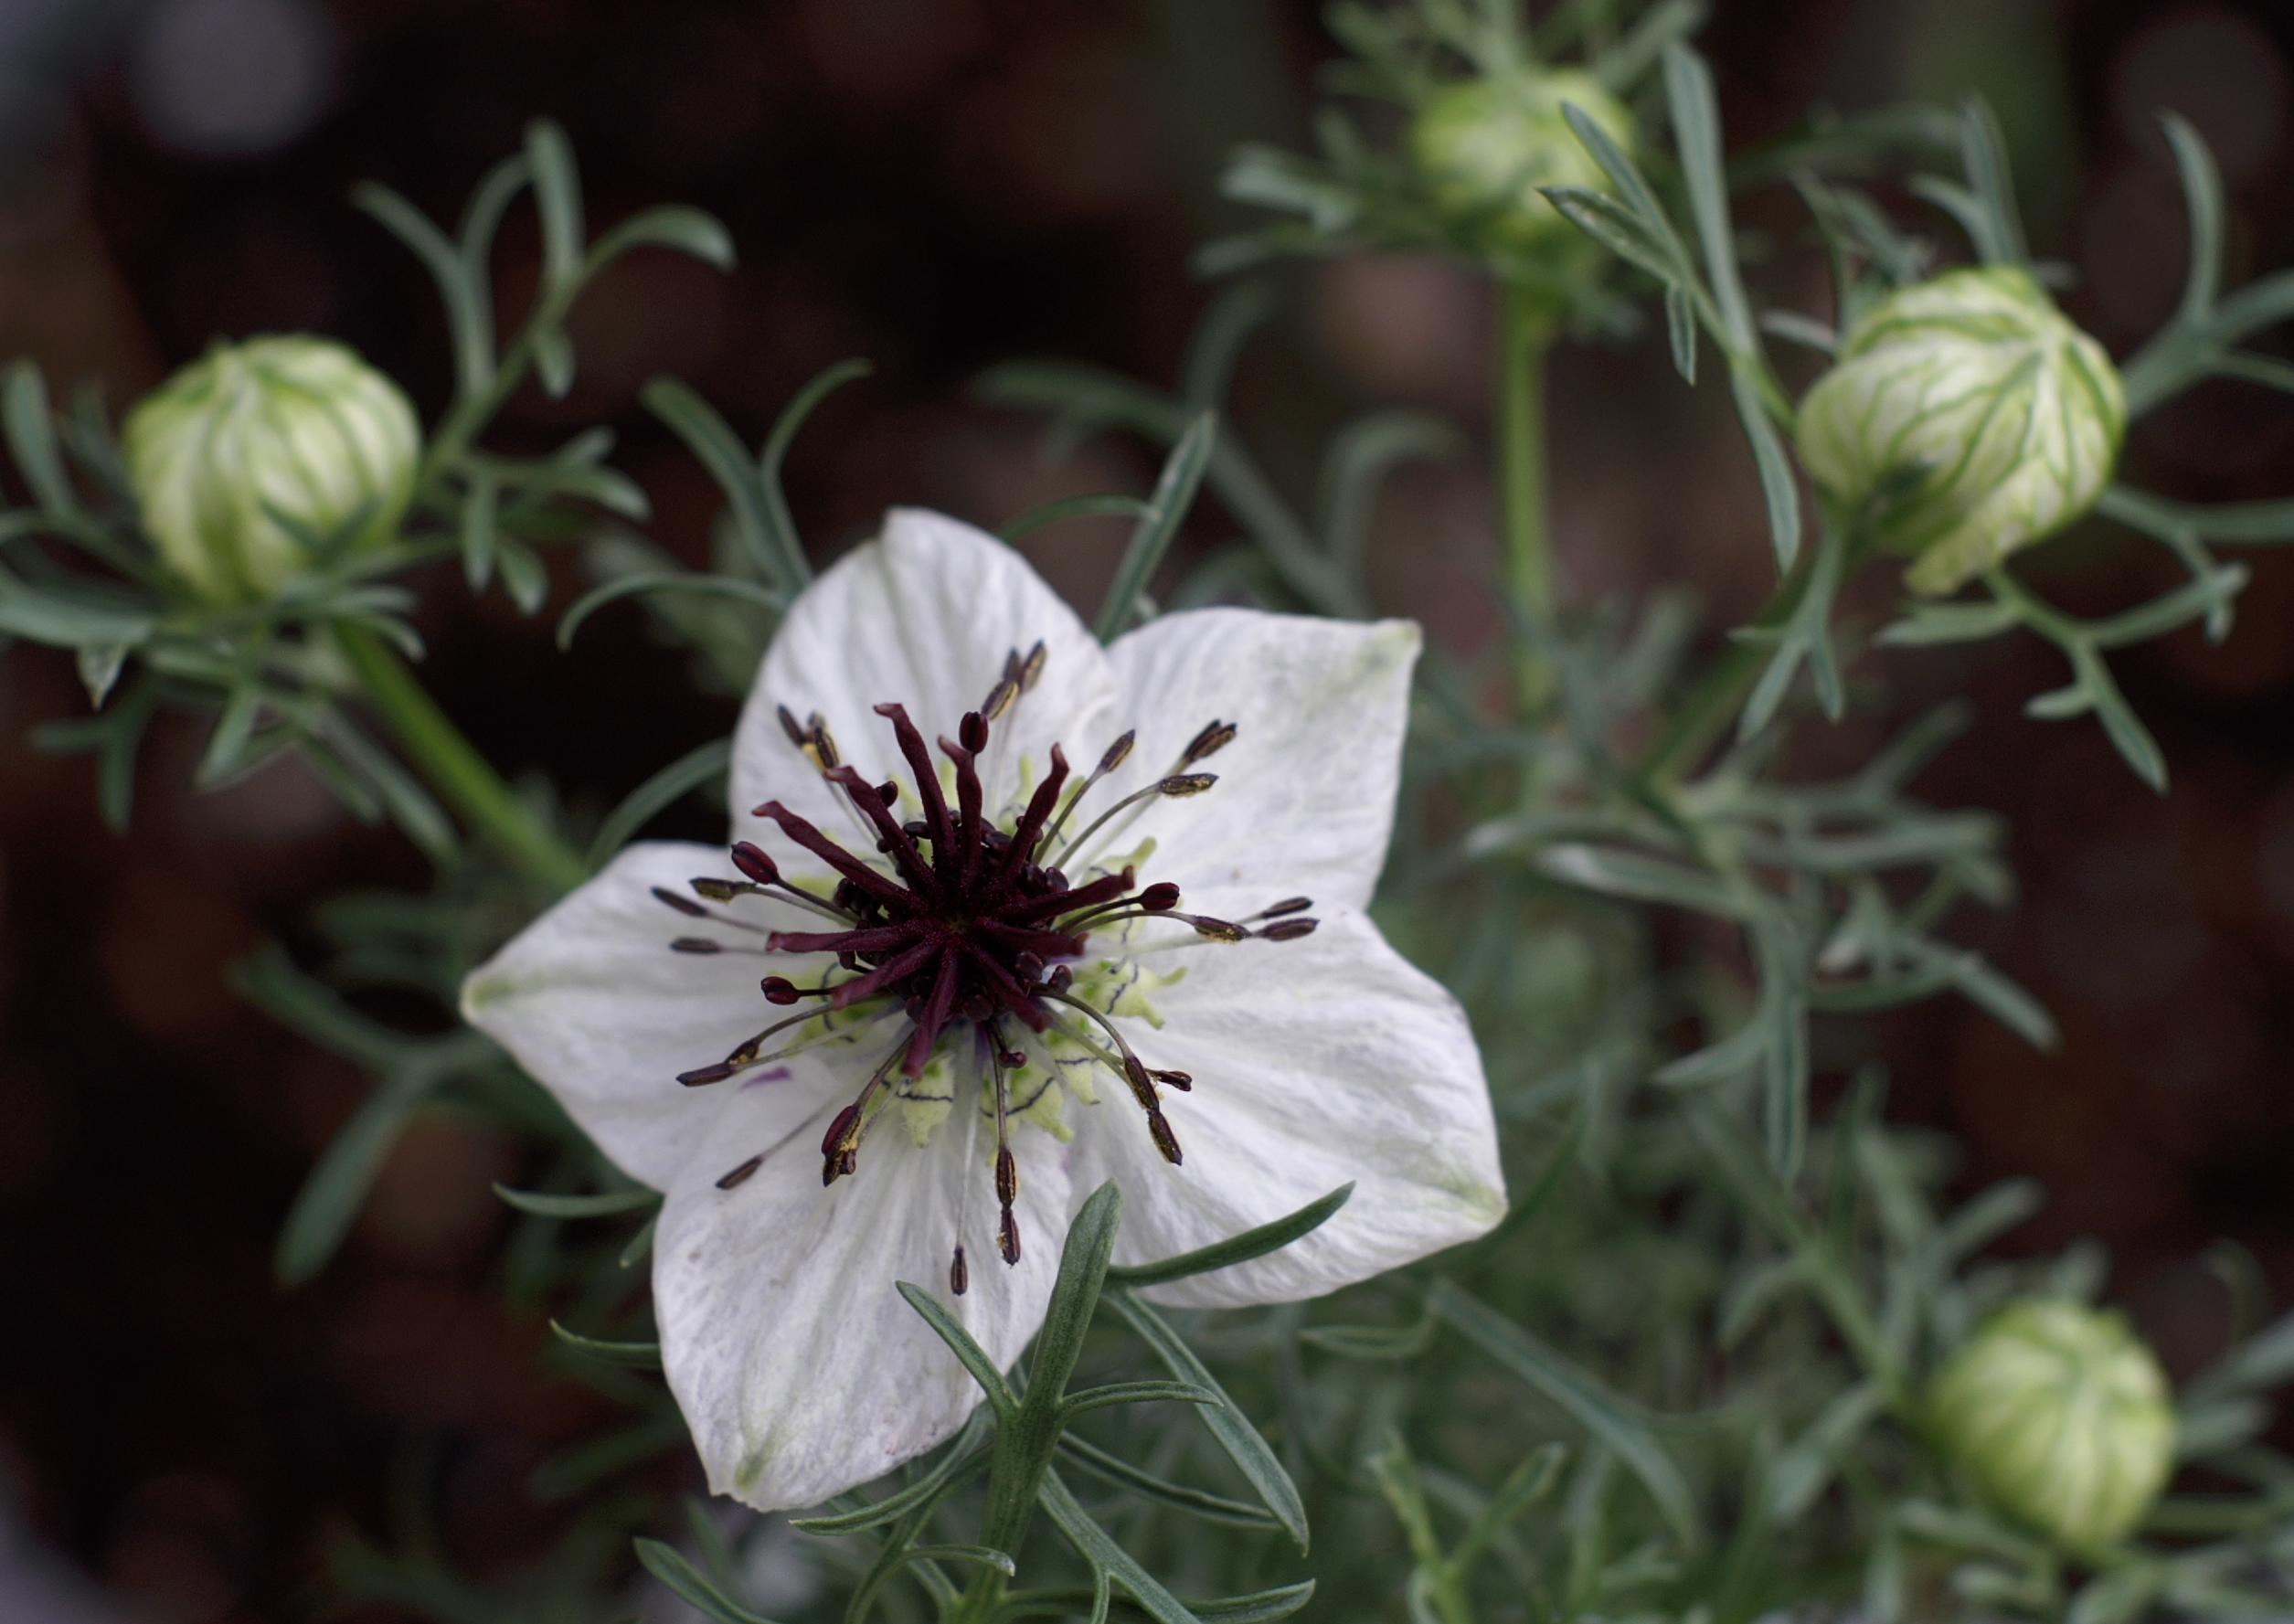 The spice doc edible and medicinal flowers - Nigella Sativa Jpg